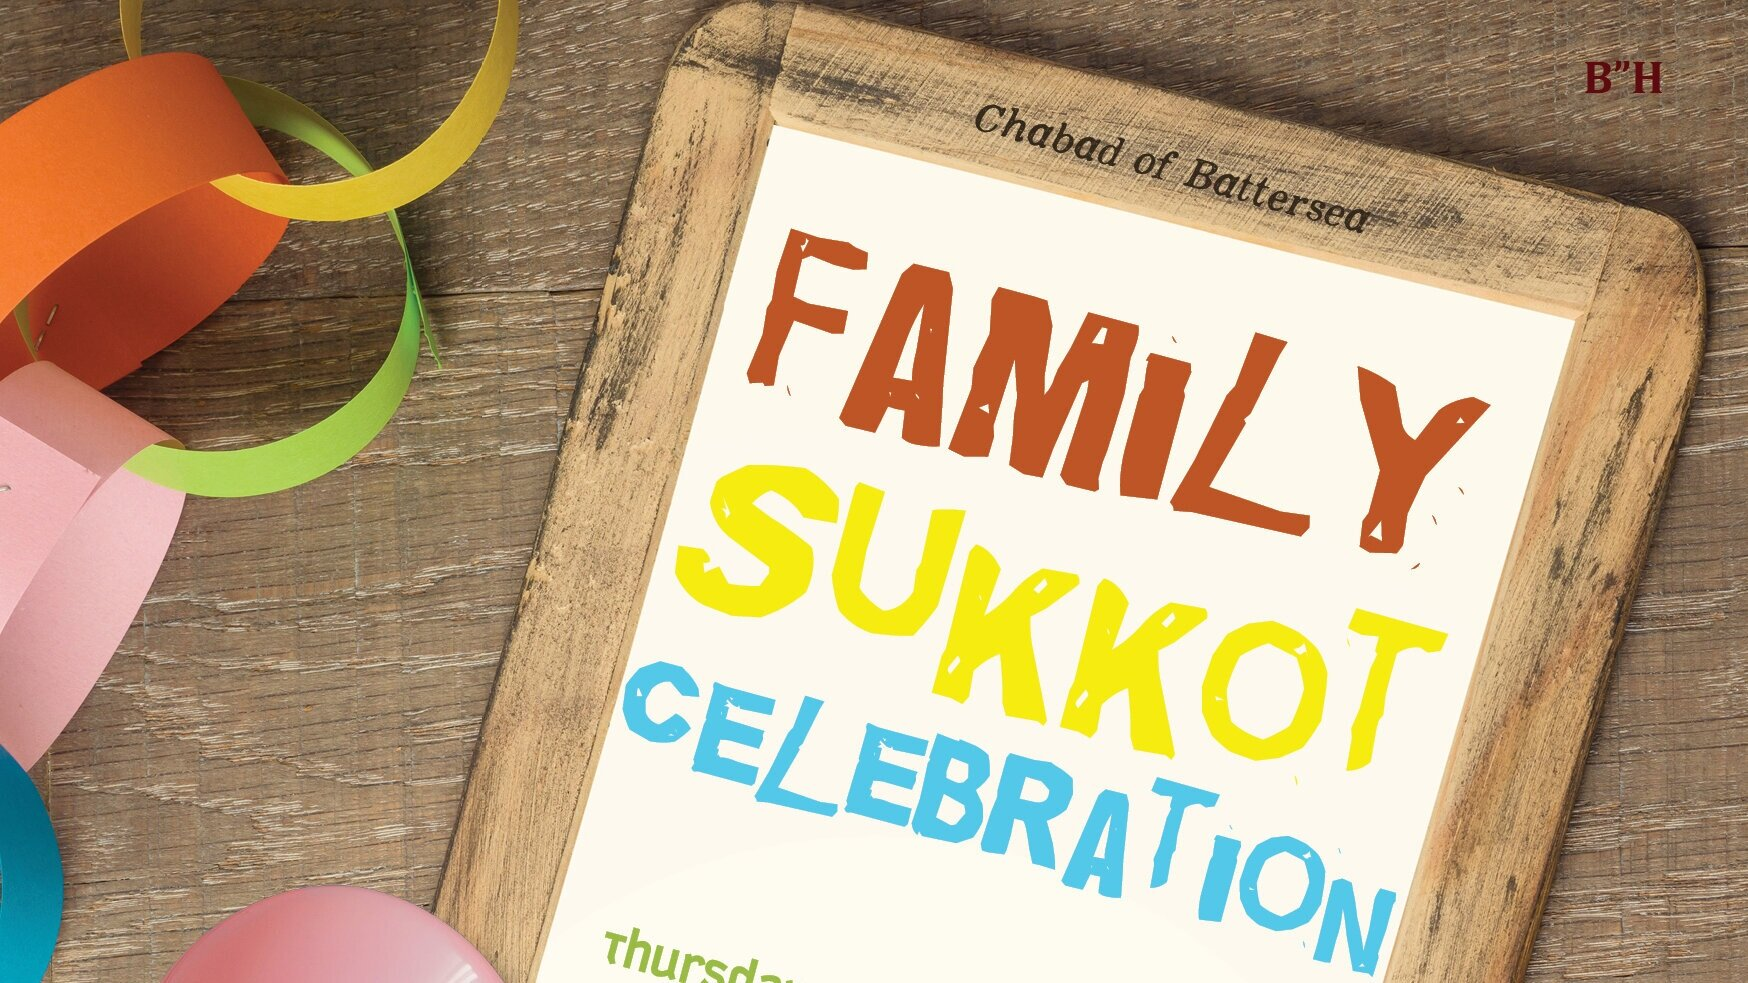 Family Sukkot Celebration3.jpg